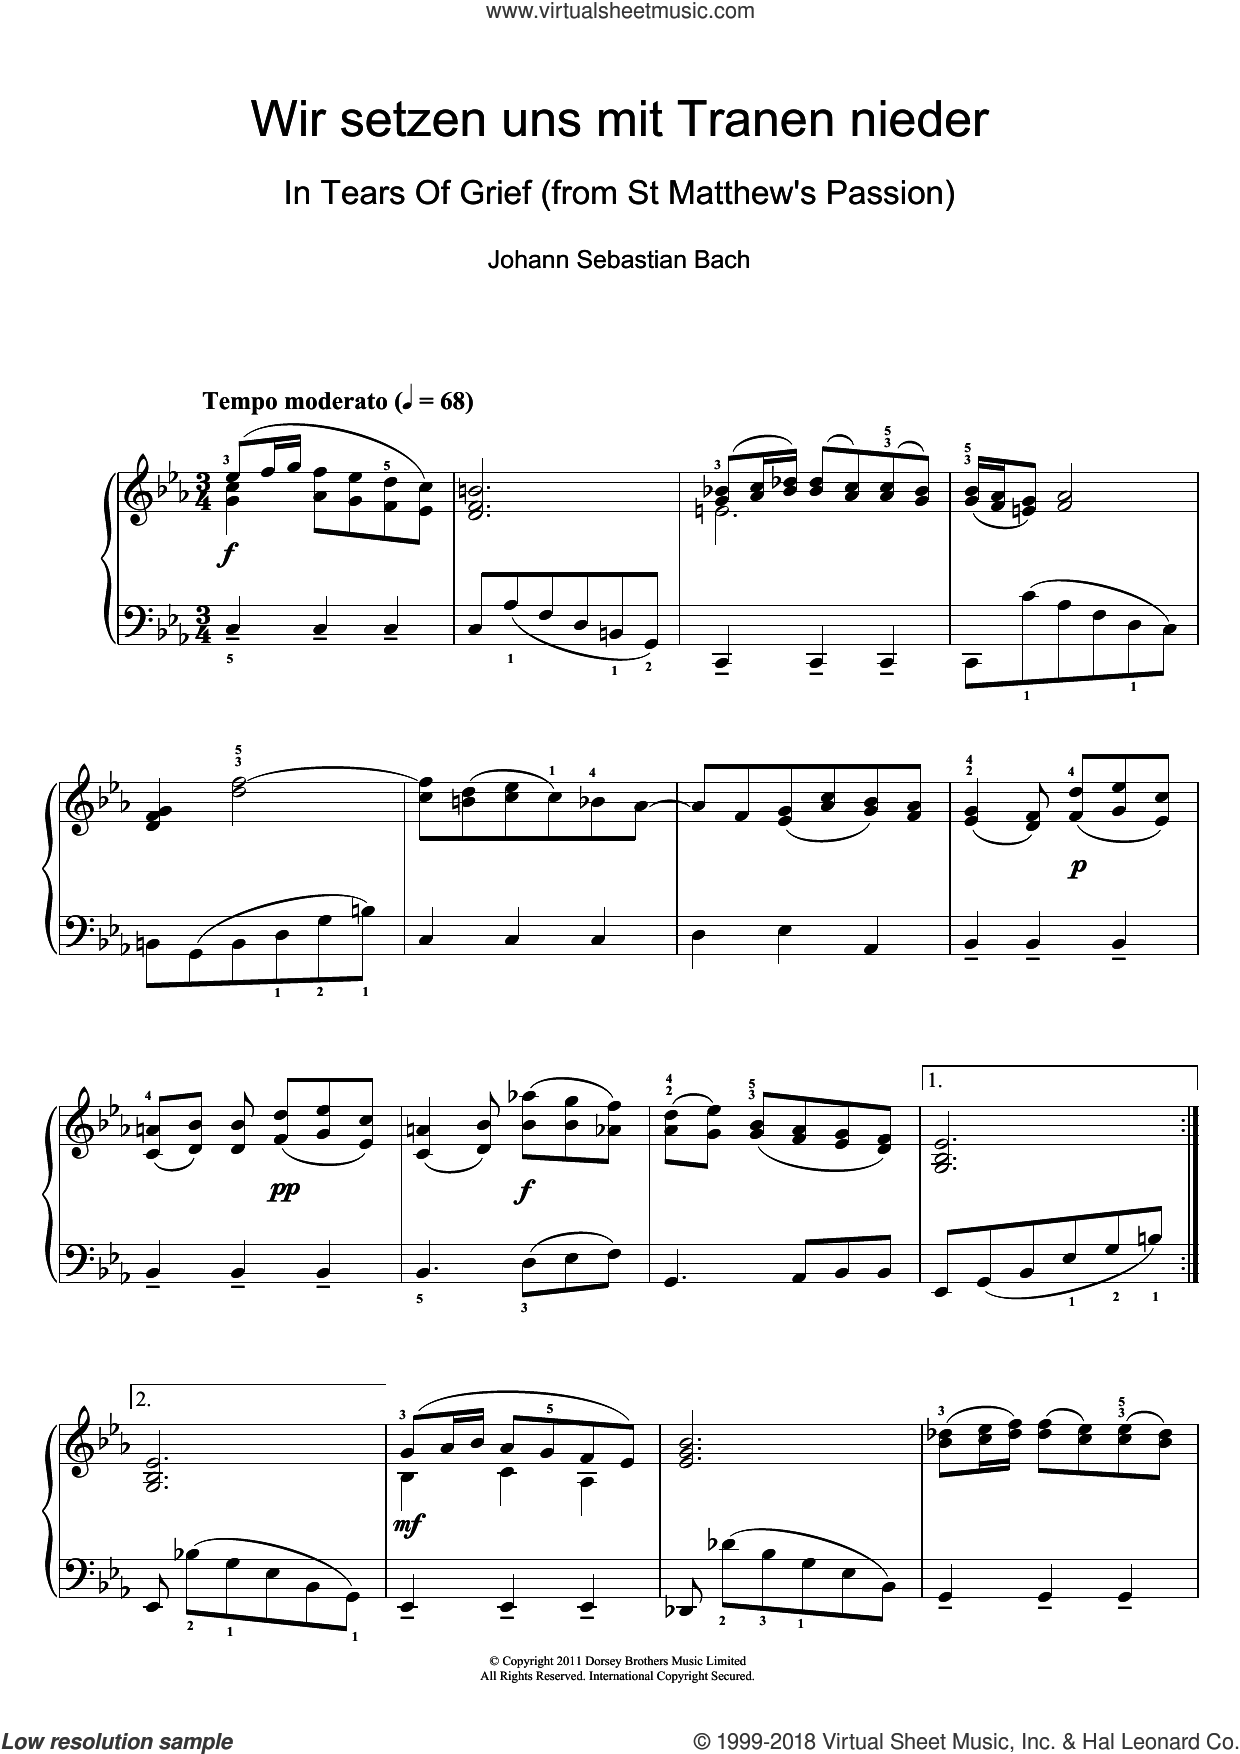 Wir setzen uns mit Tranen nieder sheet music for piano solo by Johann Sebastian Bach, classical score, intermediate skill level